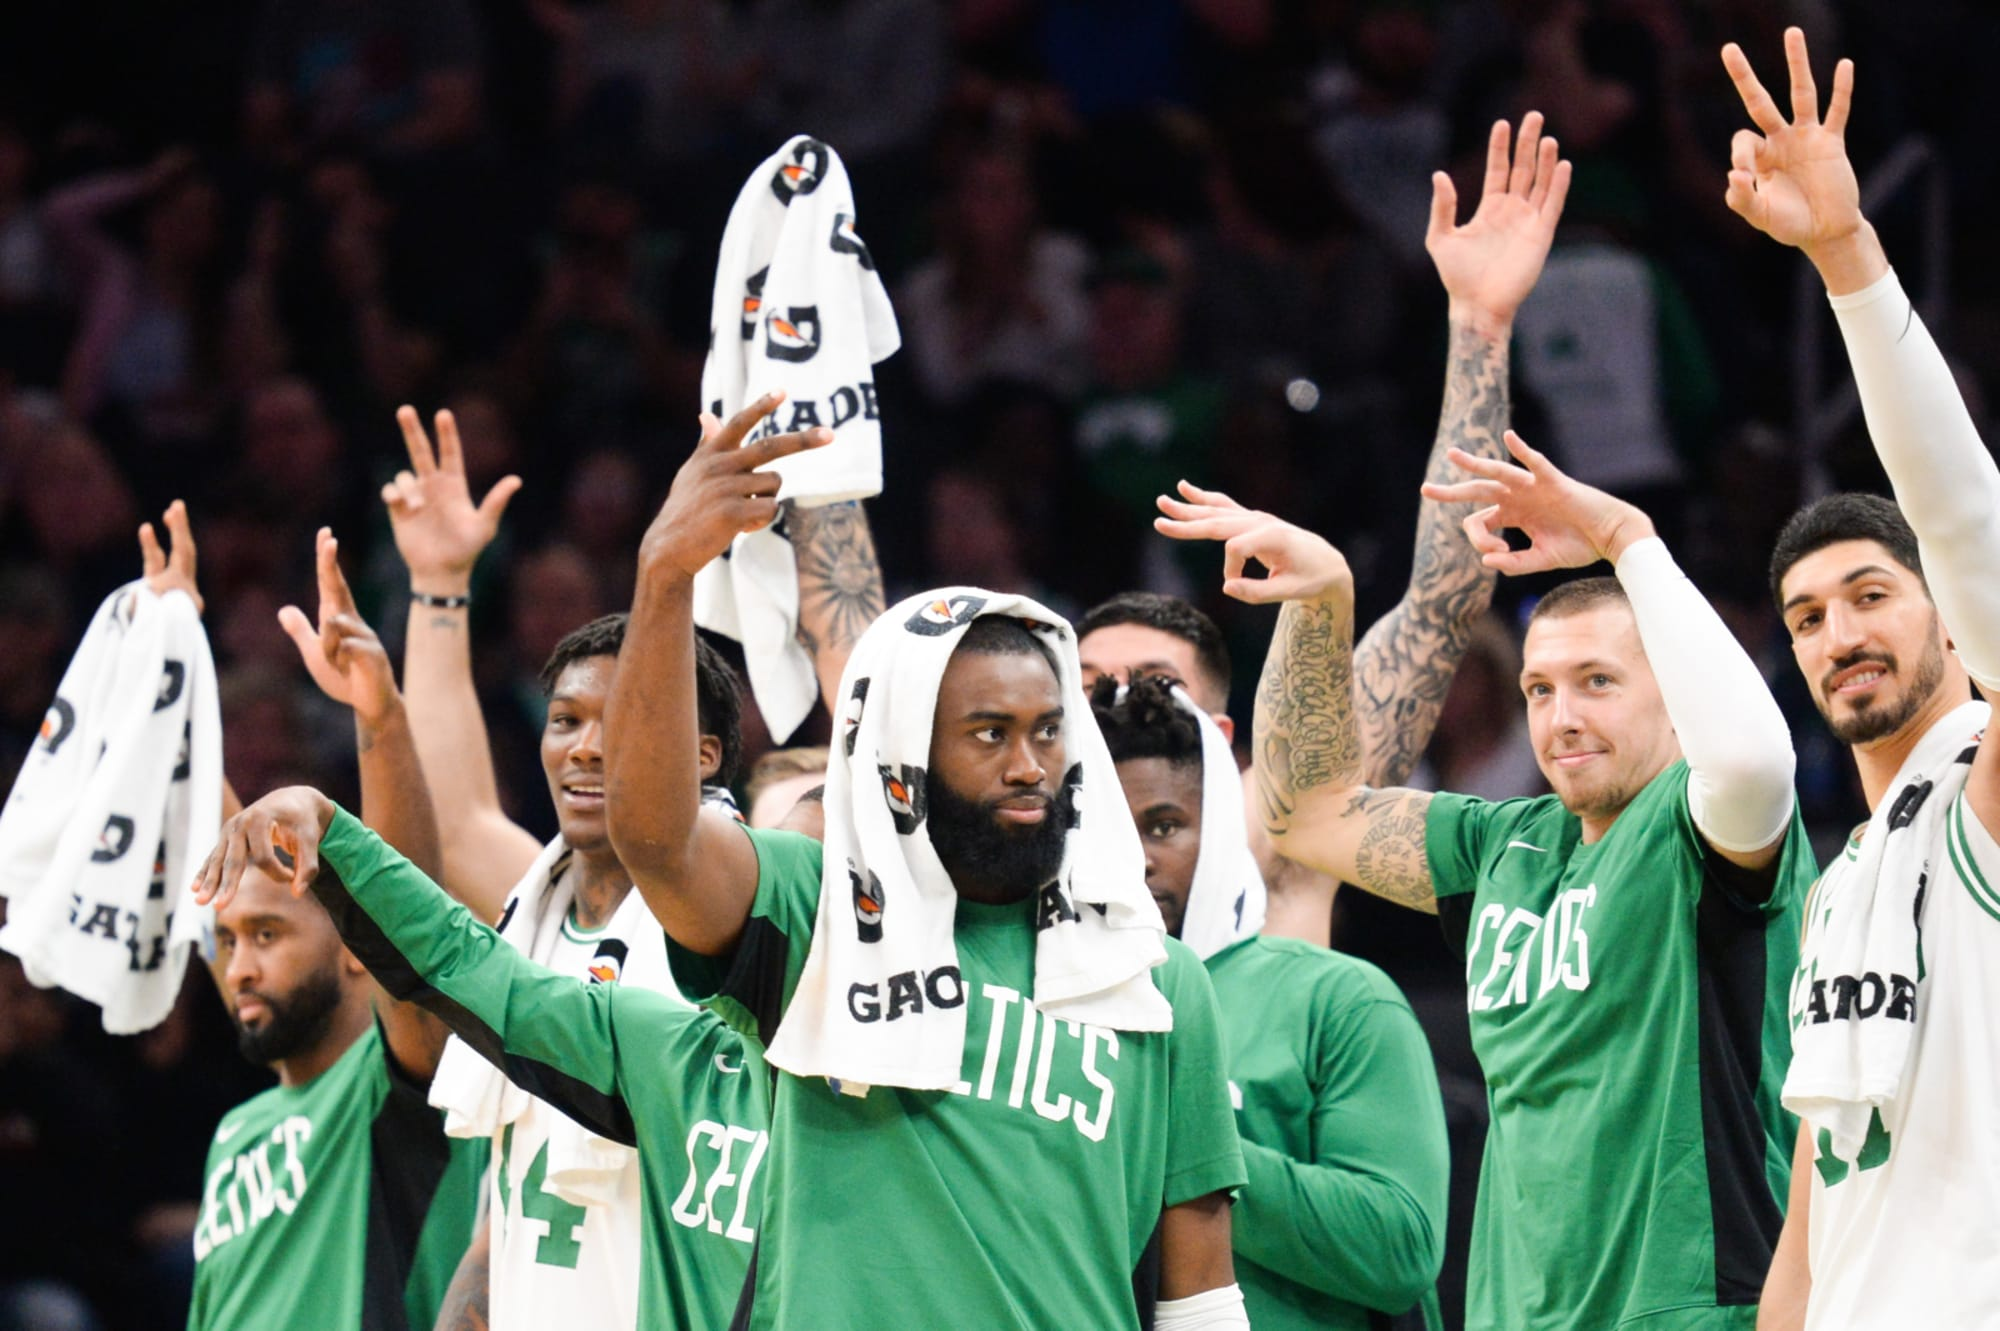 Boston Celtics: What should the Celtics' 2020 draft strategy be?